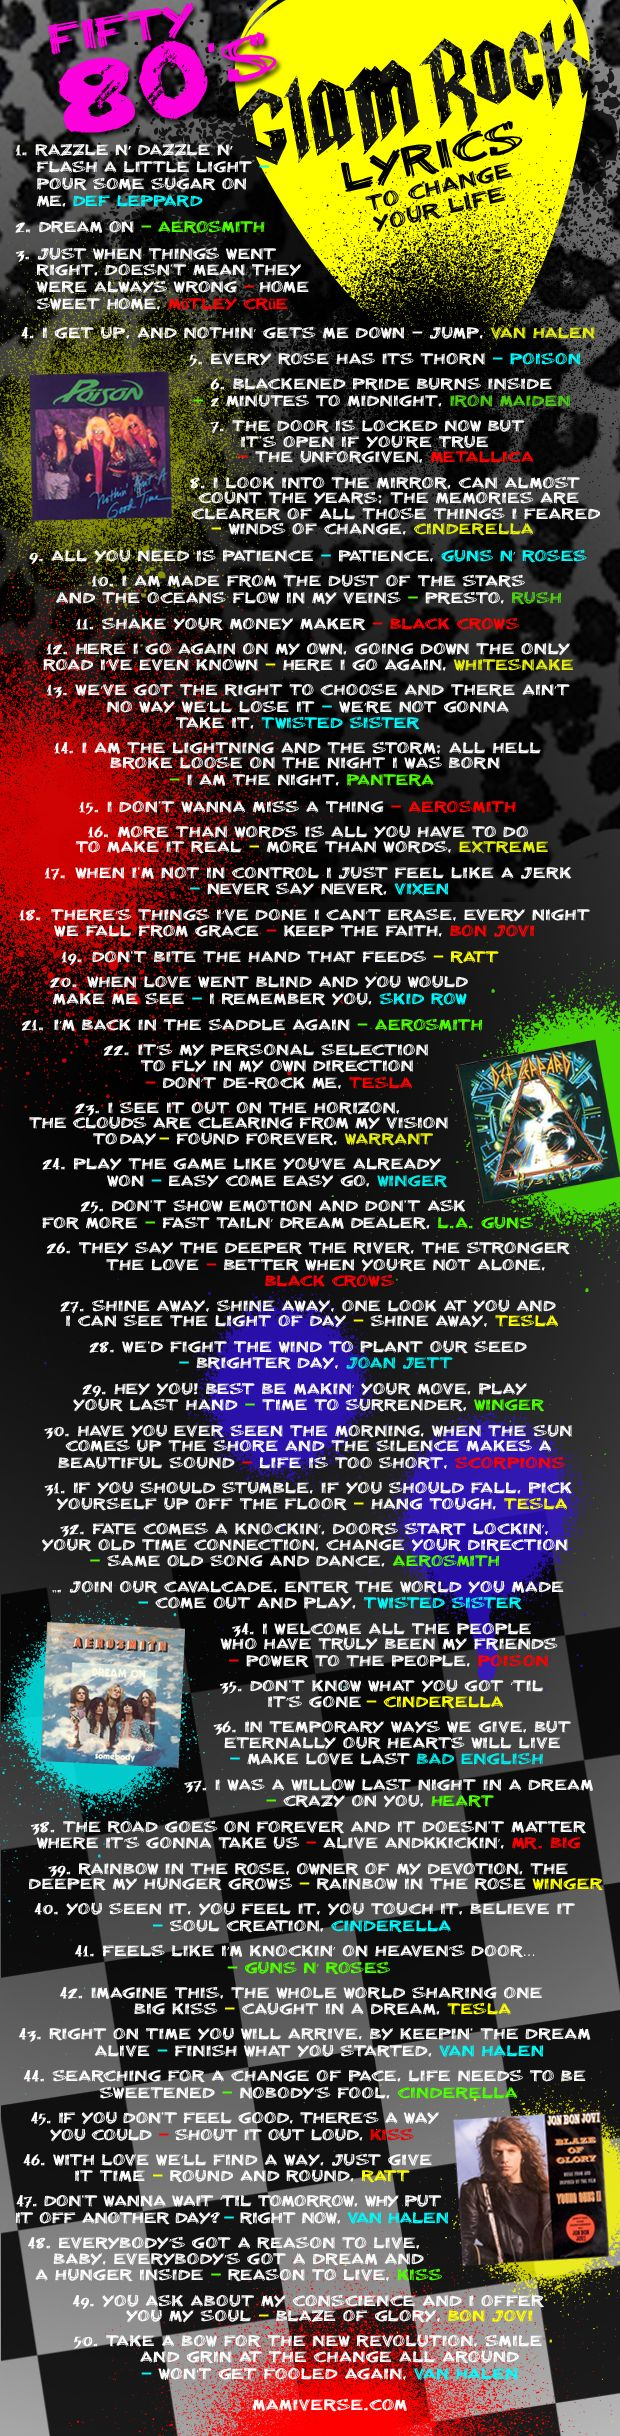 80S Glam rock lyrics to change your life...yes yes yes yes yes and people wonder why this is my favorite music